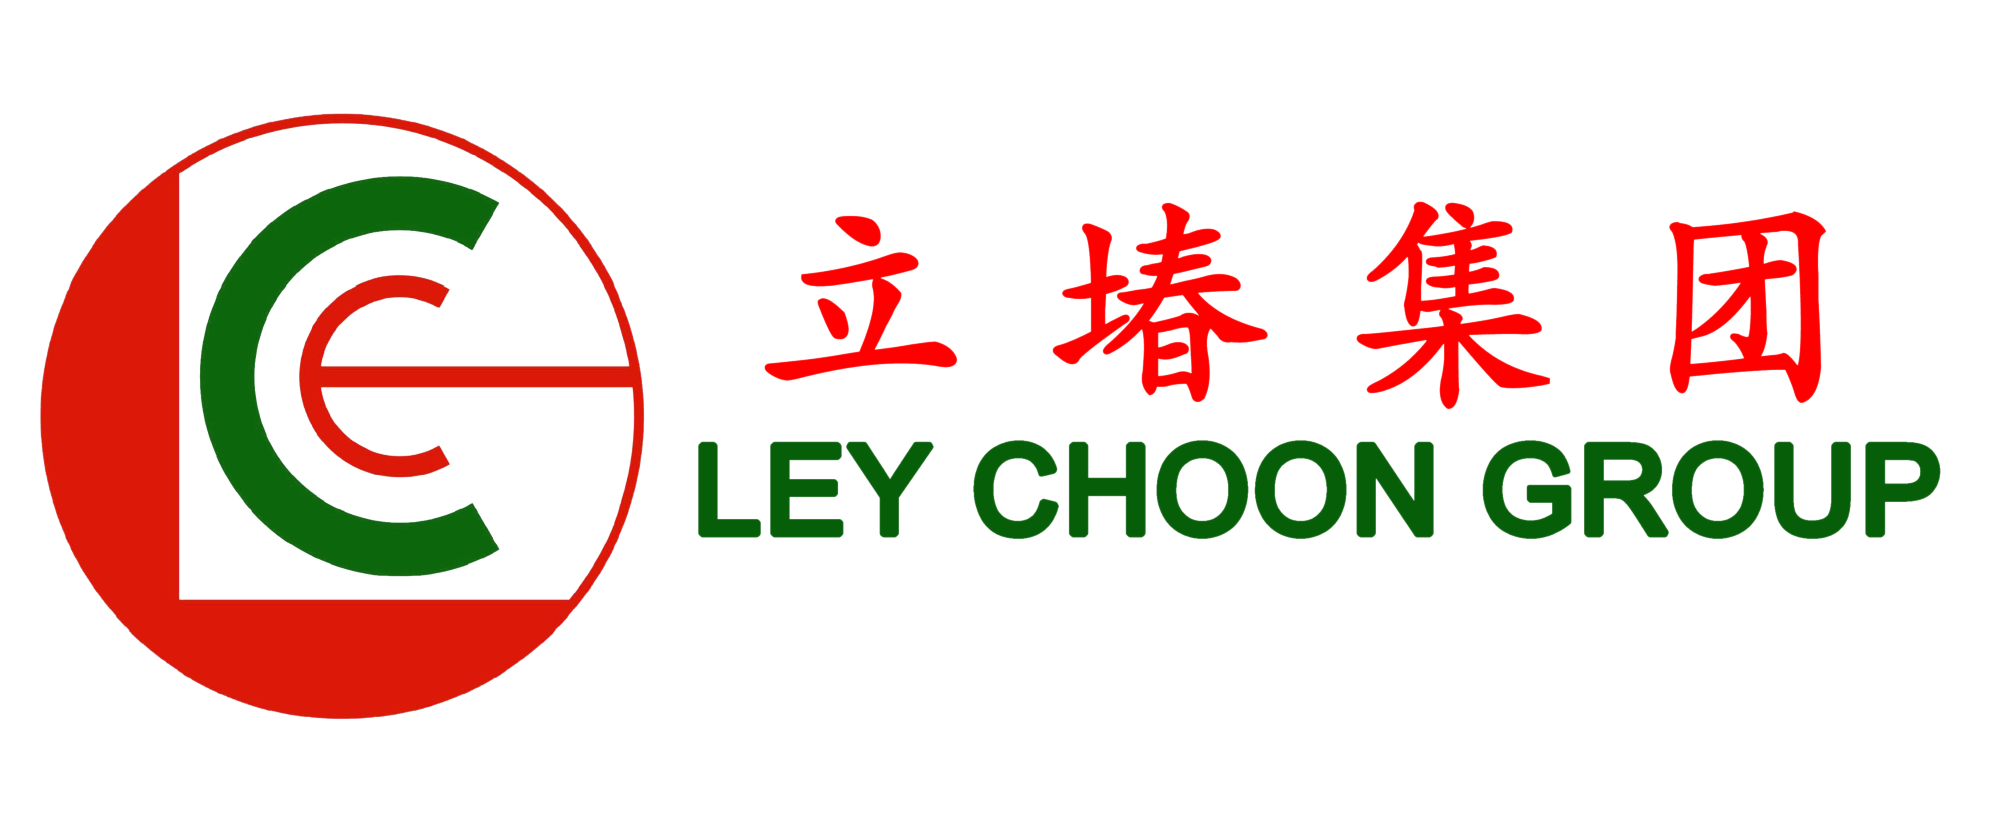 About Us « Ley Choon Group